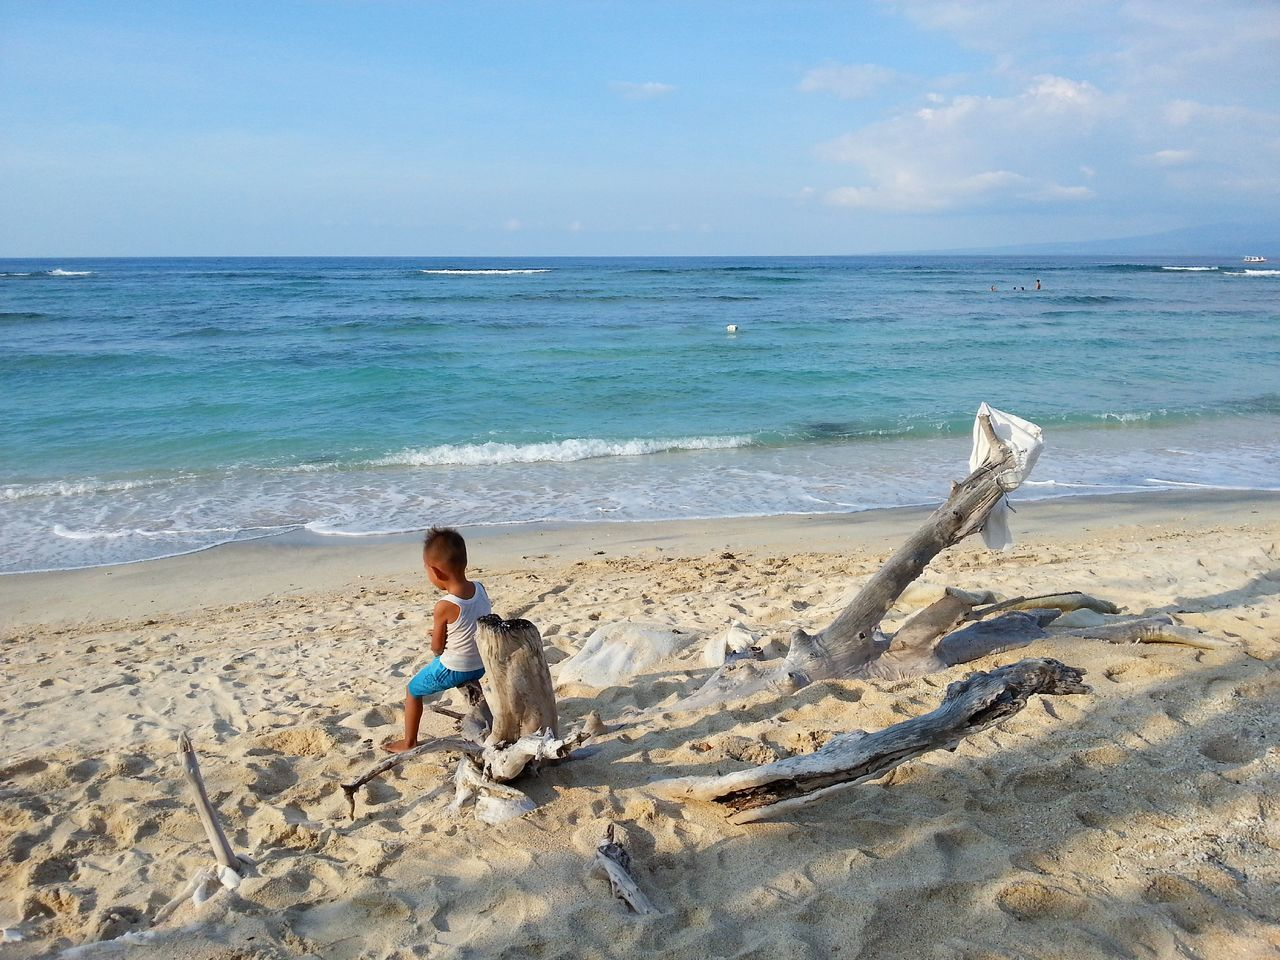 Kid thinks about his future on a beach in Gili Trawangan Island, Indonesia. Travel Photography Remote Places Beachlife Islandlife Amazing_captures Seascape Travel Forsale Stockphoto Tripofwonders Wonderfulindonesia Photography Beachphotography Photos